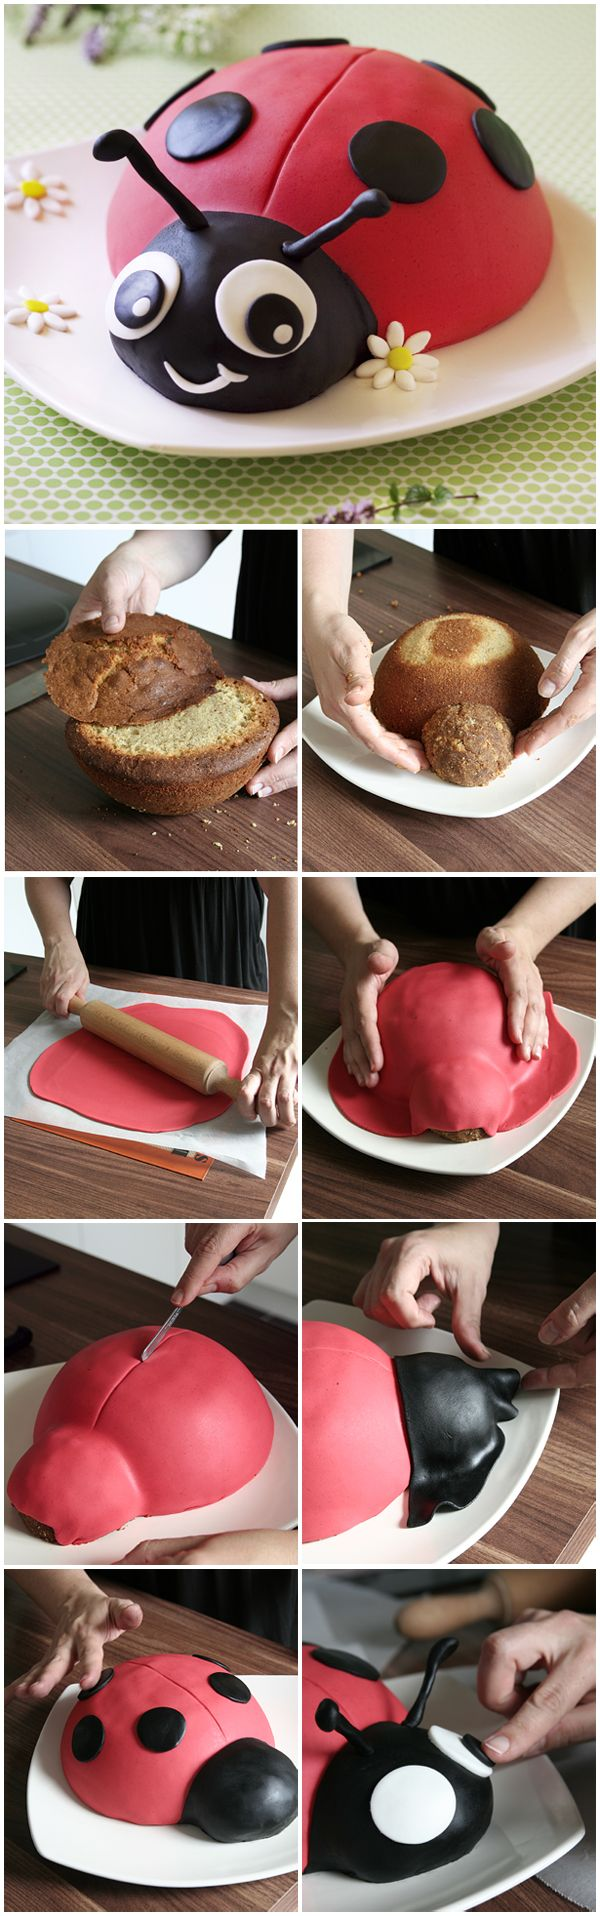 25 best ideas about ladybird cake on pinterest ladybug for Decoration pate a sucre